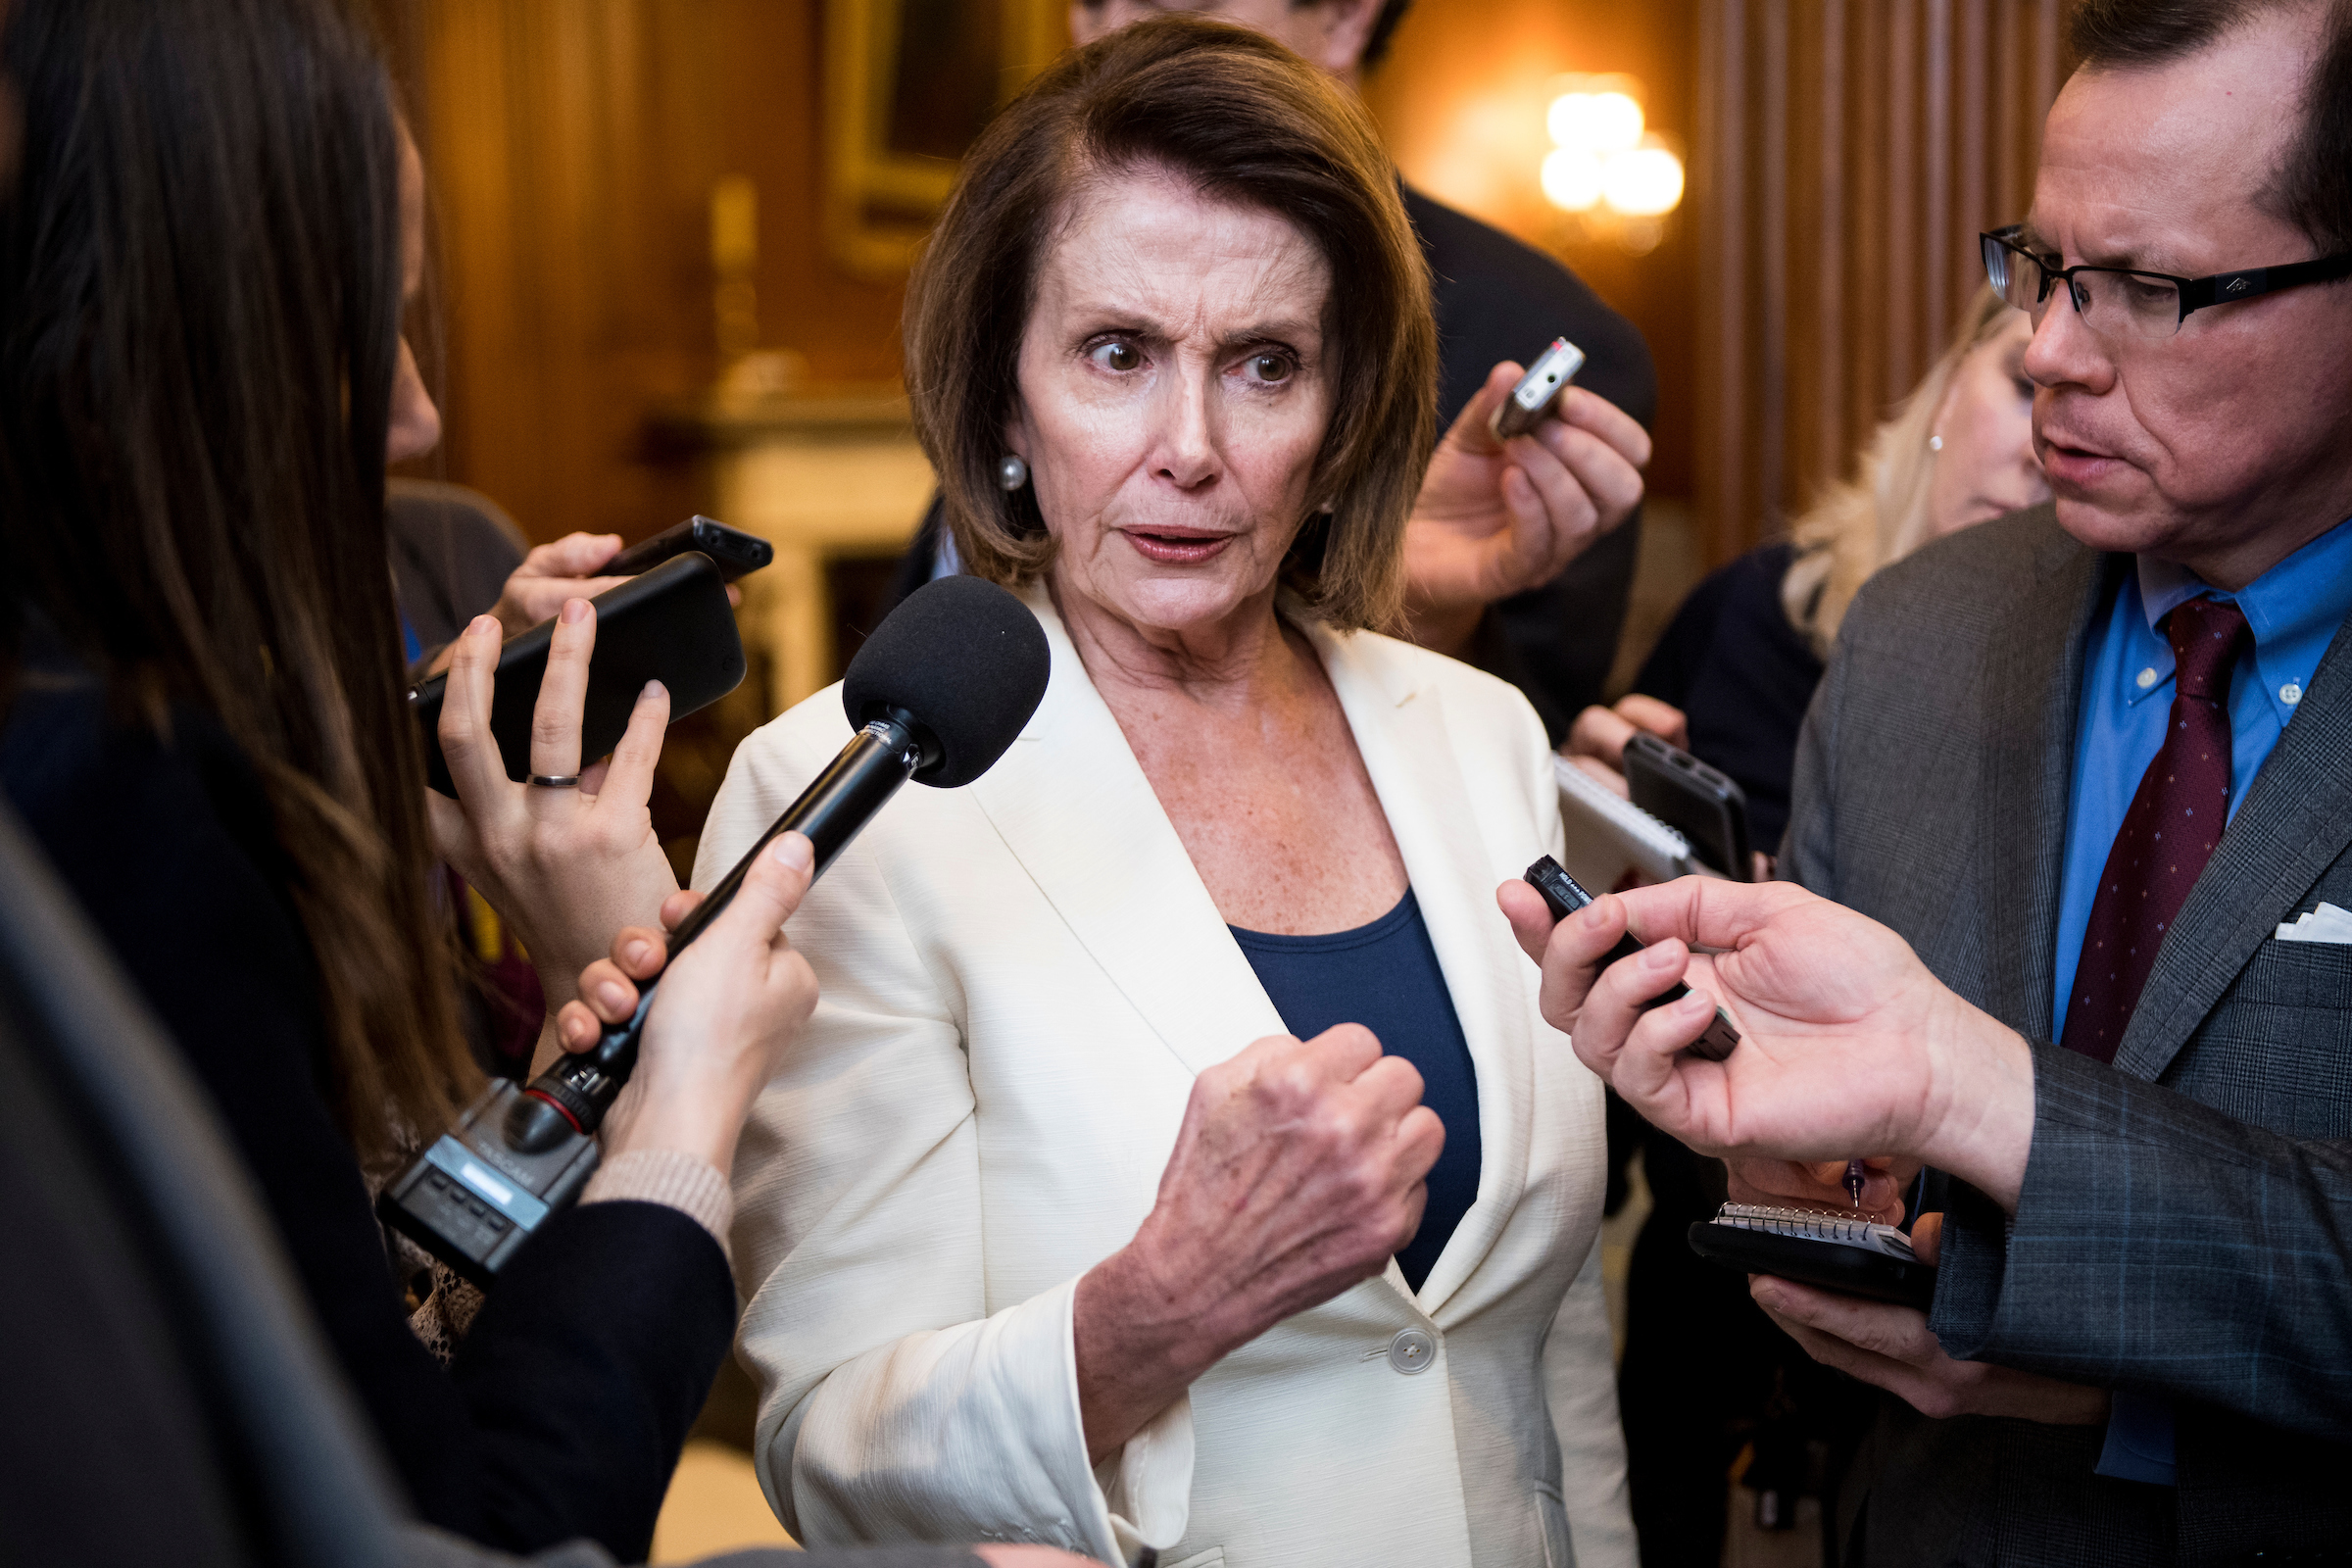 """House Minority Leader Nancy Pelosi spoke for over eight hours on the floor Wednesday, telling the stories of """"Dreamers."""" Her record-breaking speech overshadowed the opening day of the House Democrats' annual retreat, including former Vice President Joseph R. Biden Jr.'s advice to the caucus to """"holler more loudly."""" (Bill Clark/CQ Roll Call)"""